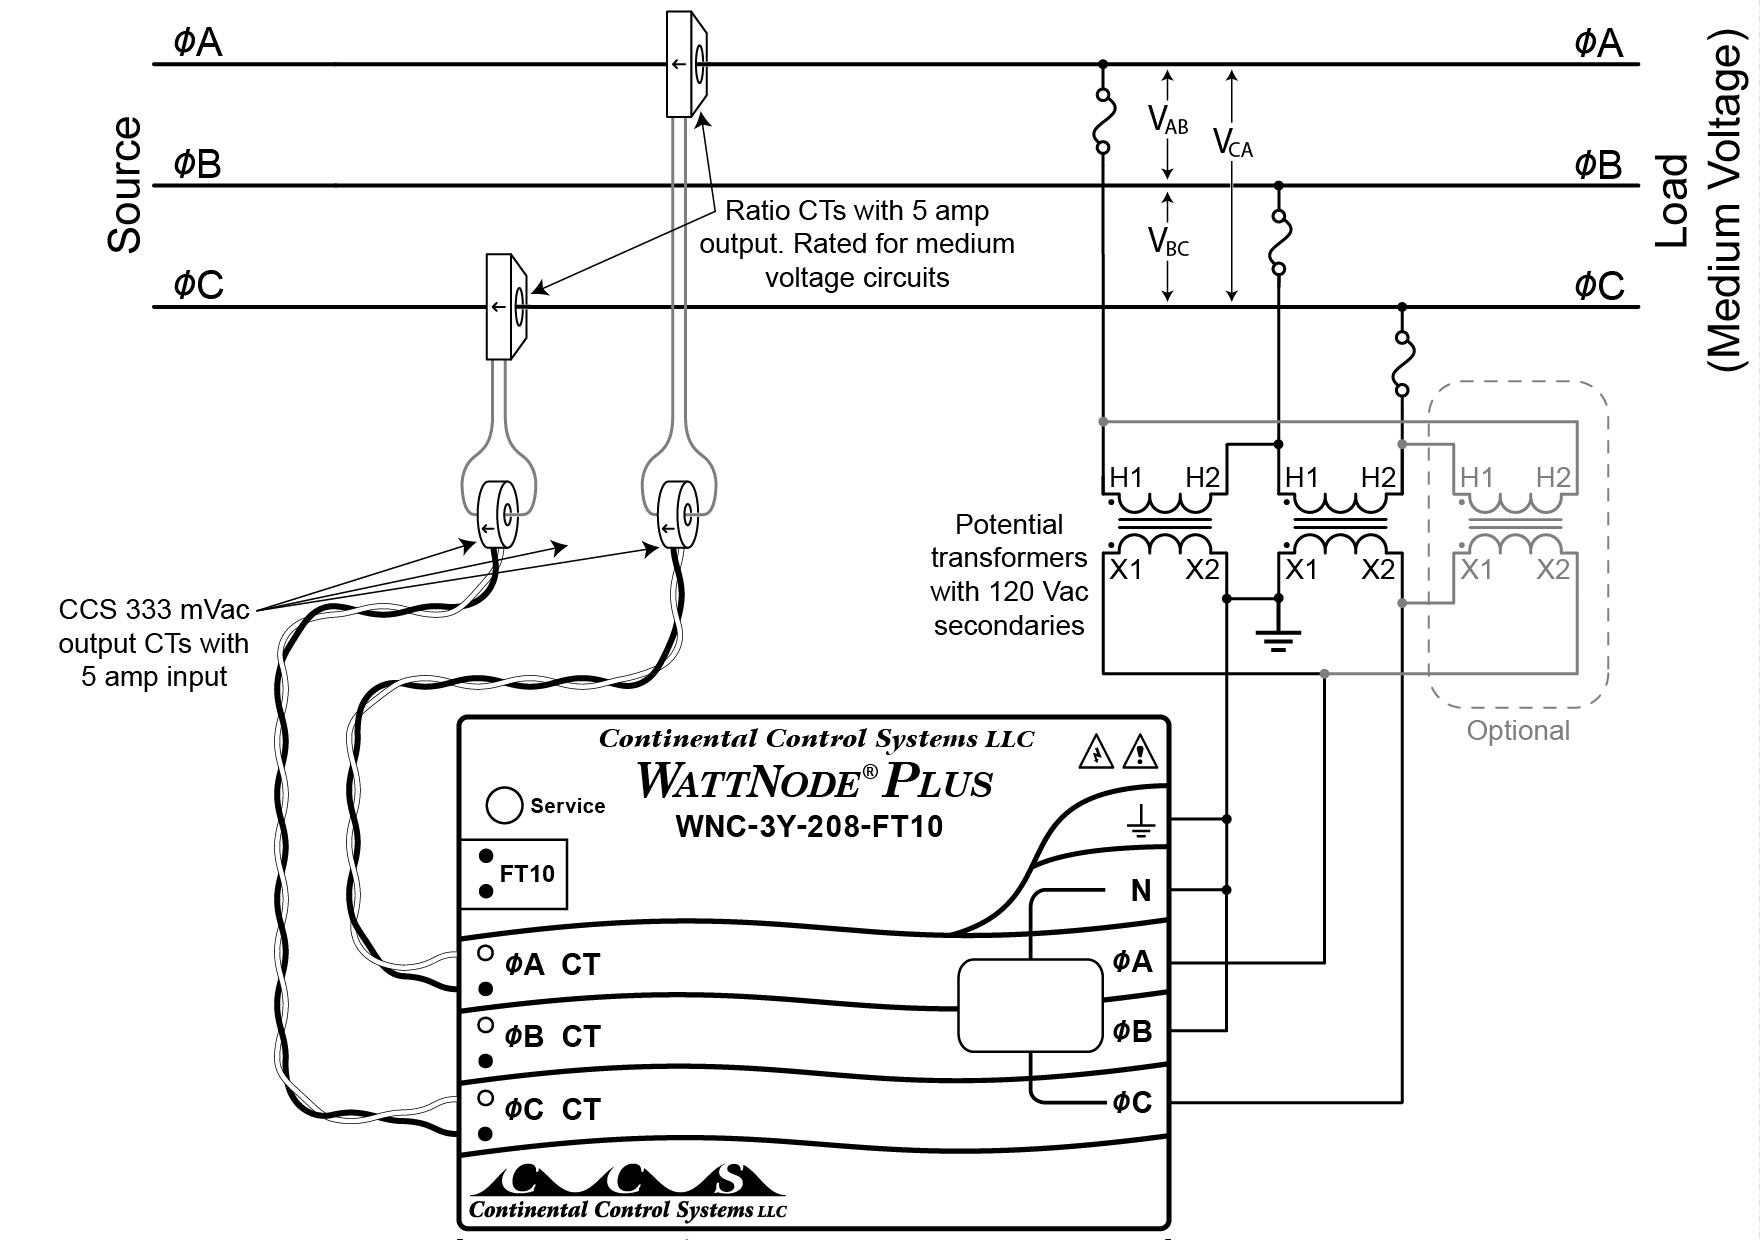 Wiring Diagram Form 9s Ct Library John Deere Gx335 Figure 3 Monitoring A Delta Circuit